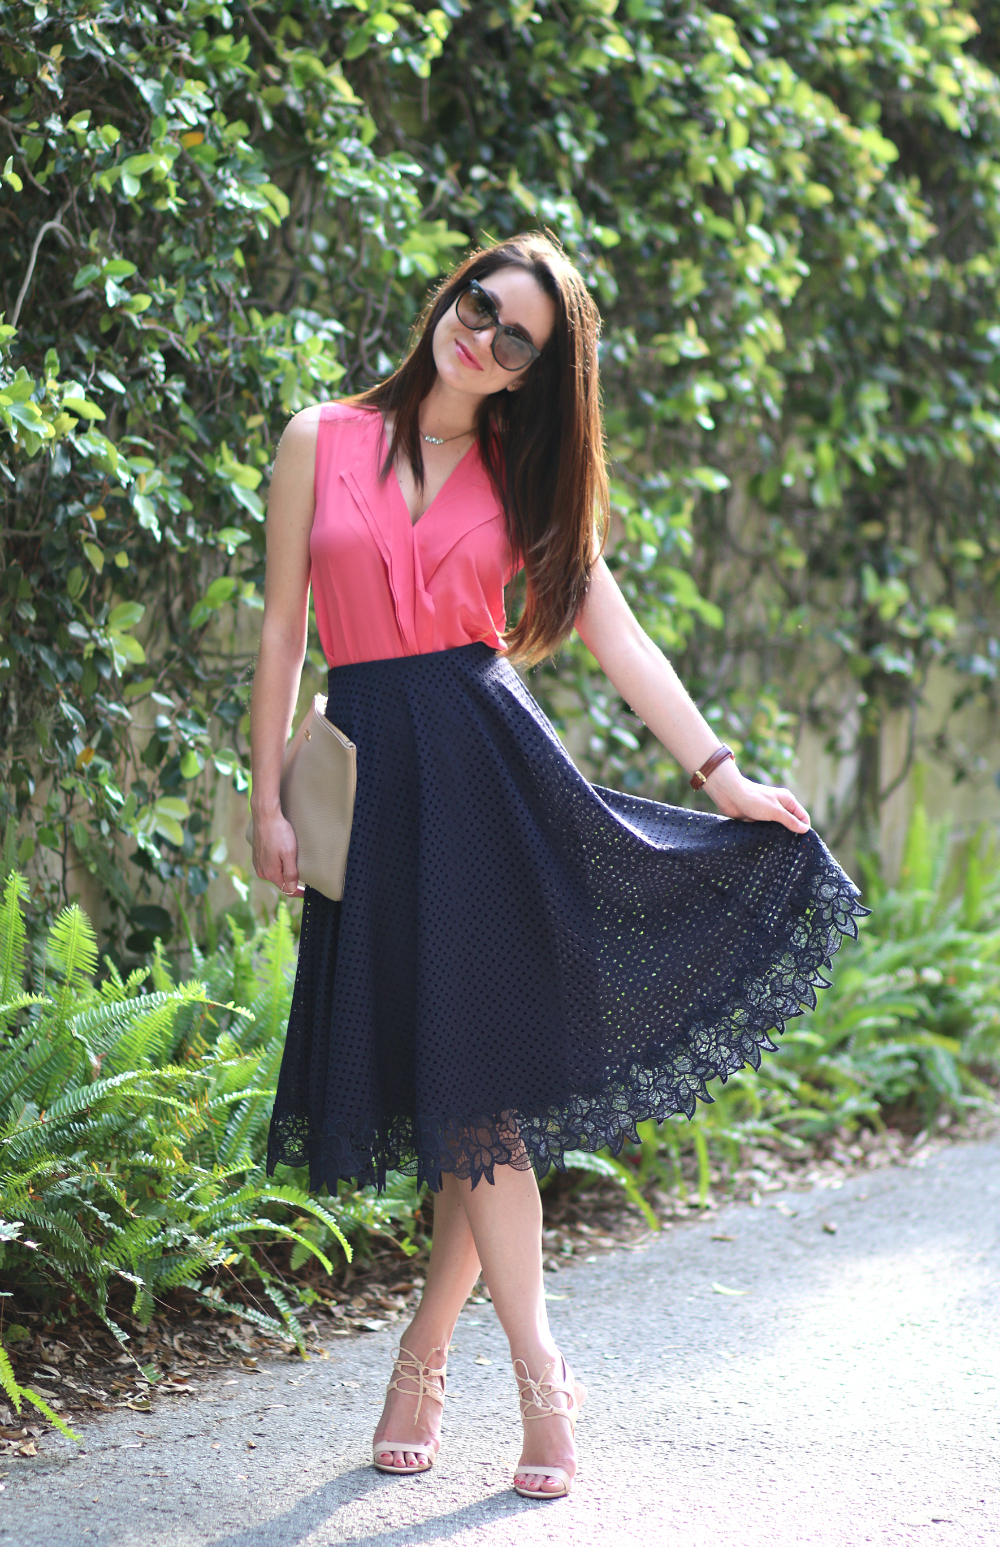 Ann Taylor Skirt, Floral Lace Midi Skirt, Lace Midi Skirt, Lace Swing Skirt, Spring Outfit, Stephanie Ziajka, Diary of a Debutante